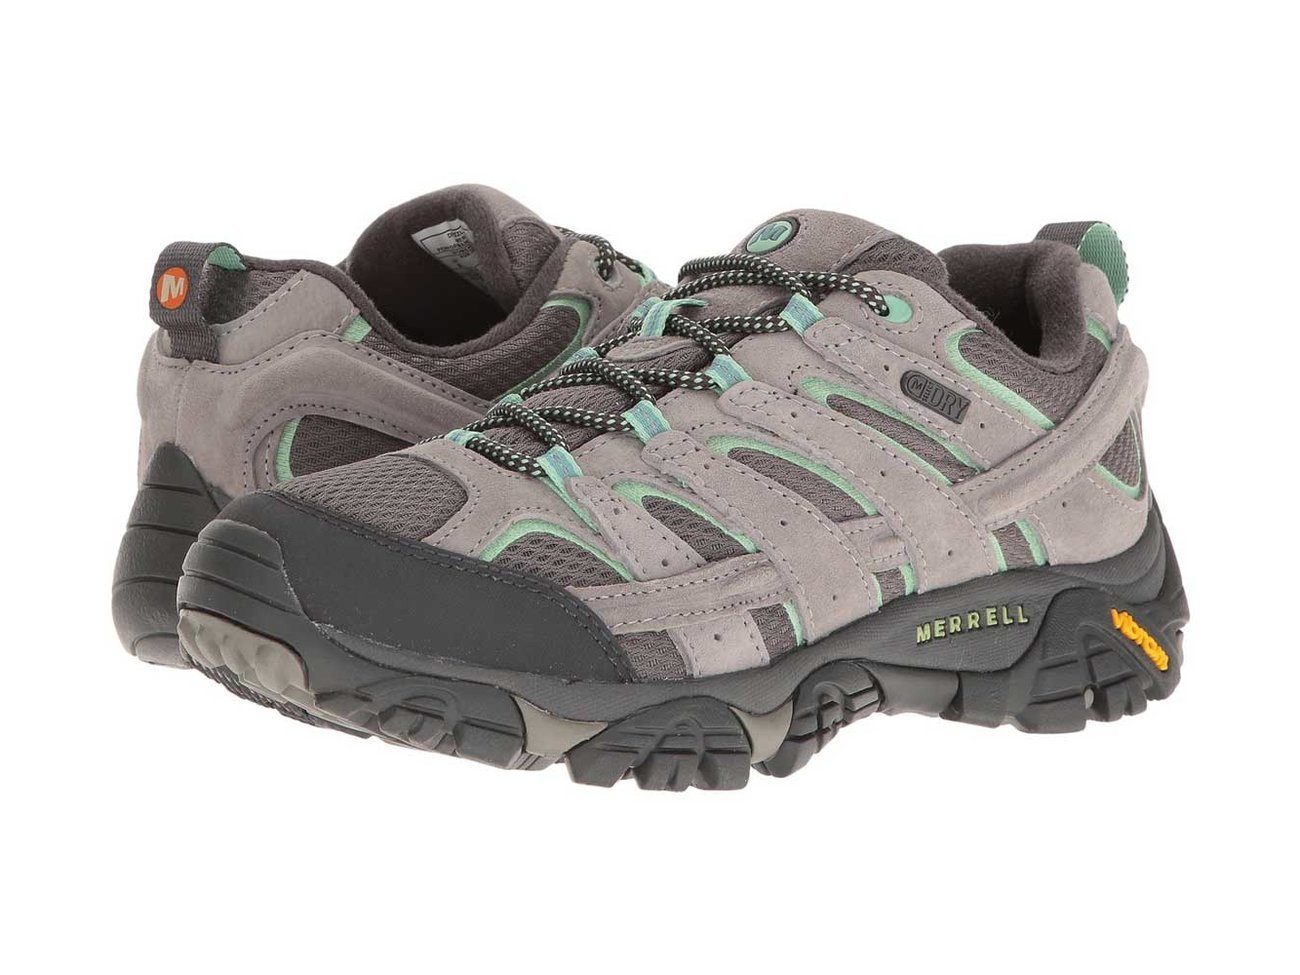 501e5eddef89 Best for Muddy or Wet Trails  Merrell Moab 2 Waterproof Hiking Shoe